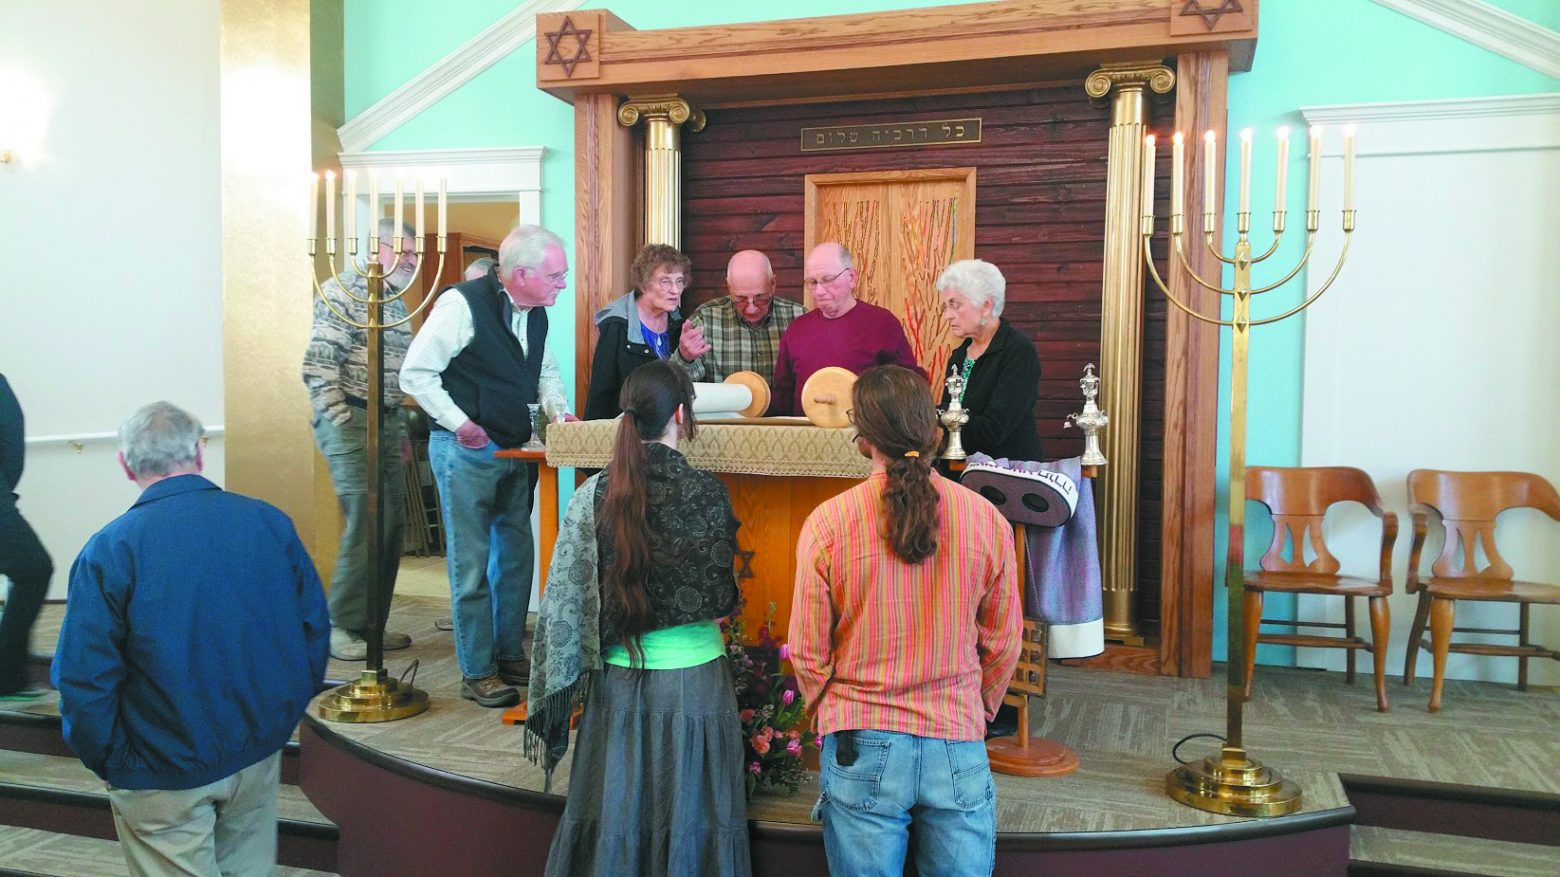 Aaron Scholnik, second from right, on the new bimah with open house guests